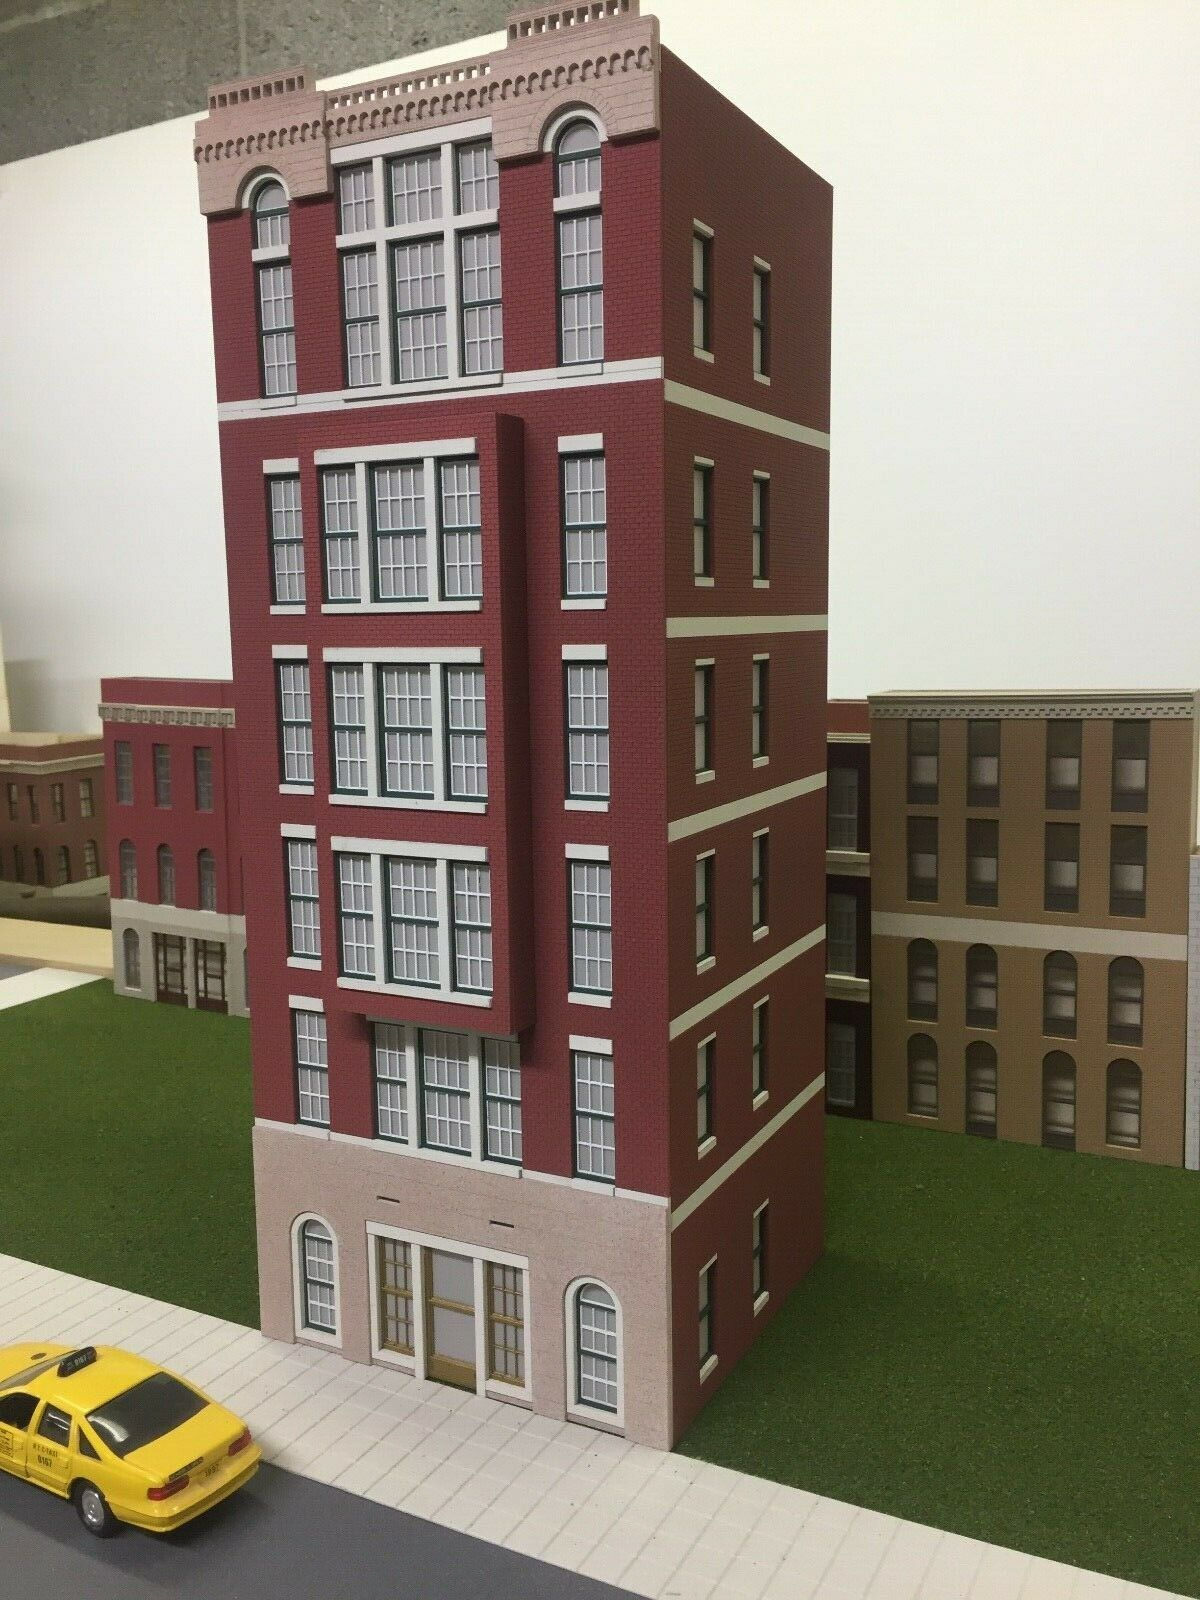 O Scale Layout Building Cameron Apartments 6-Story Lit, CS-01-6030-BAY-WR-B2